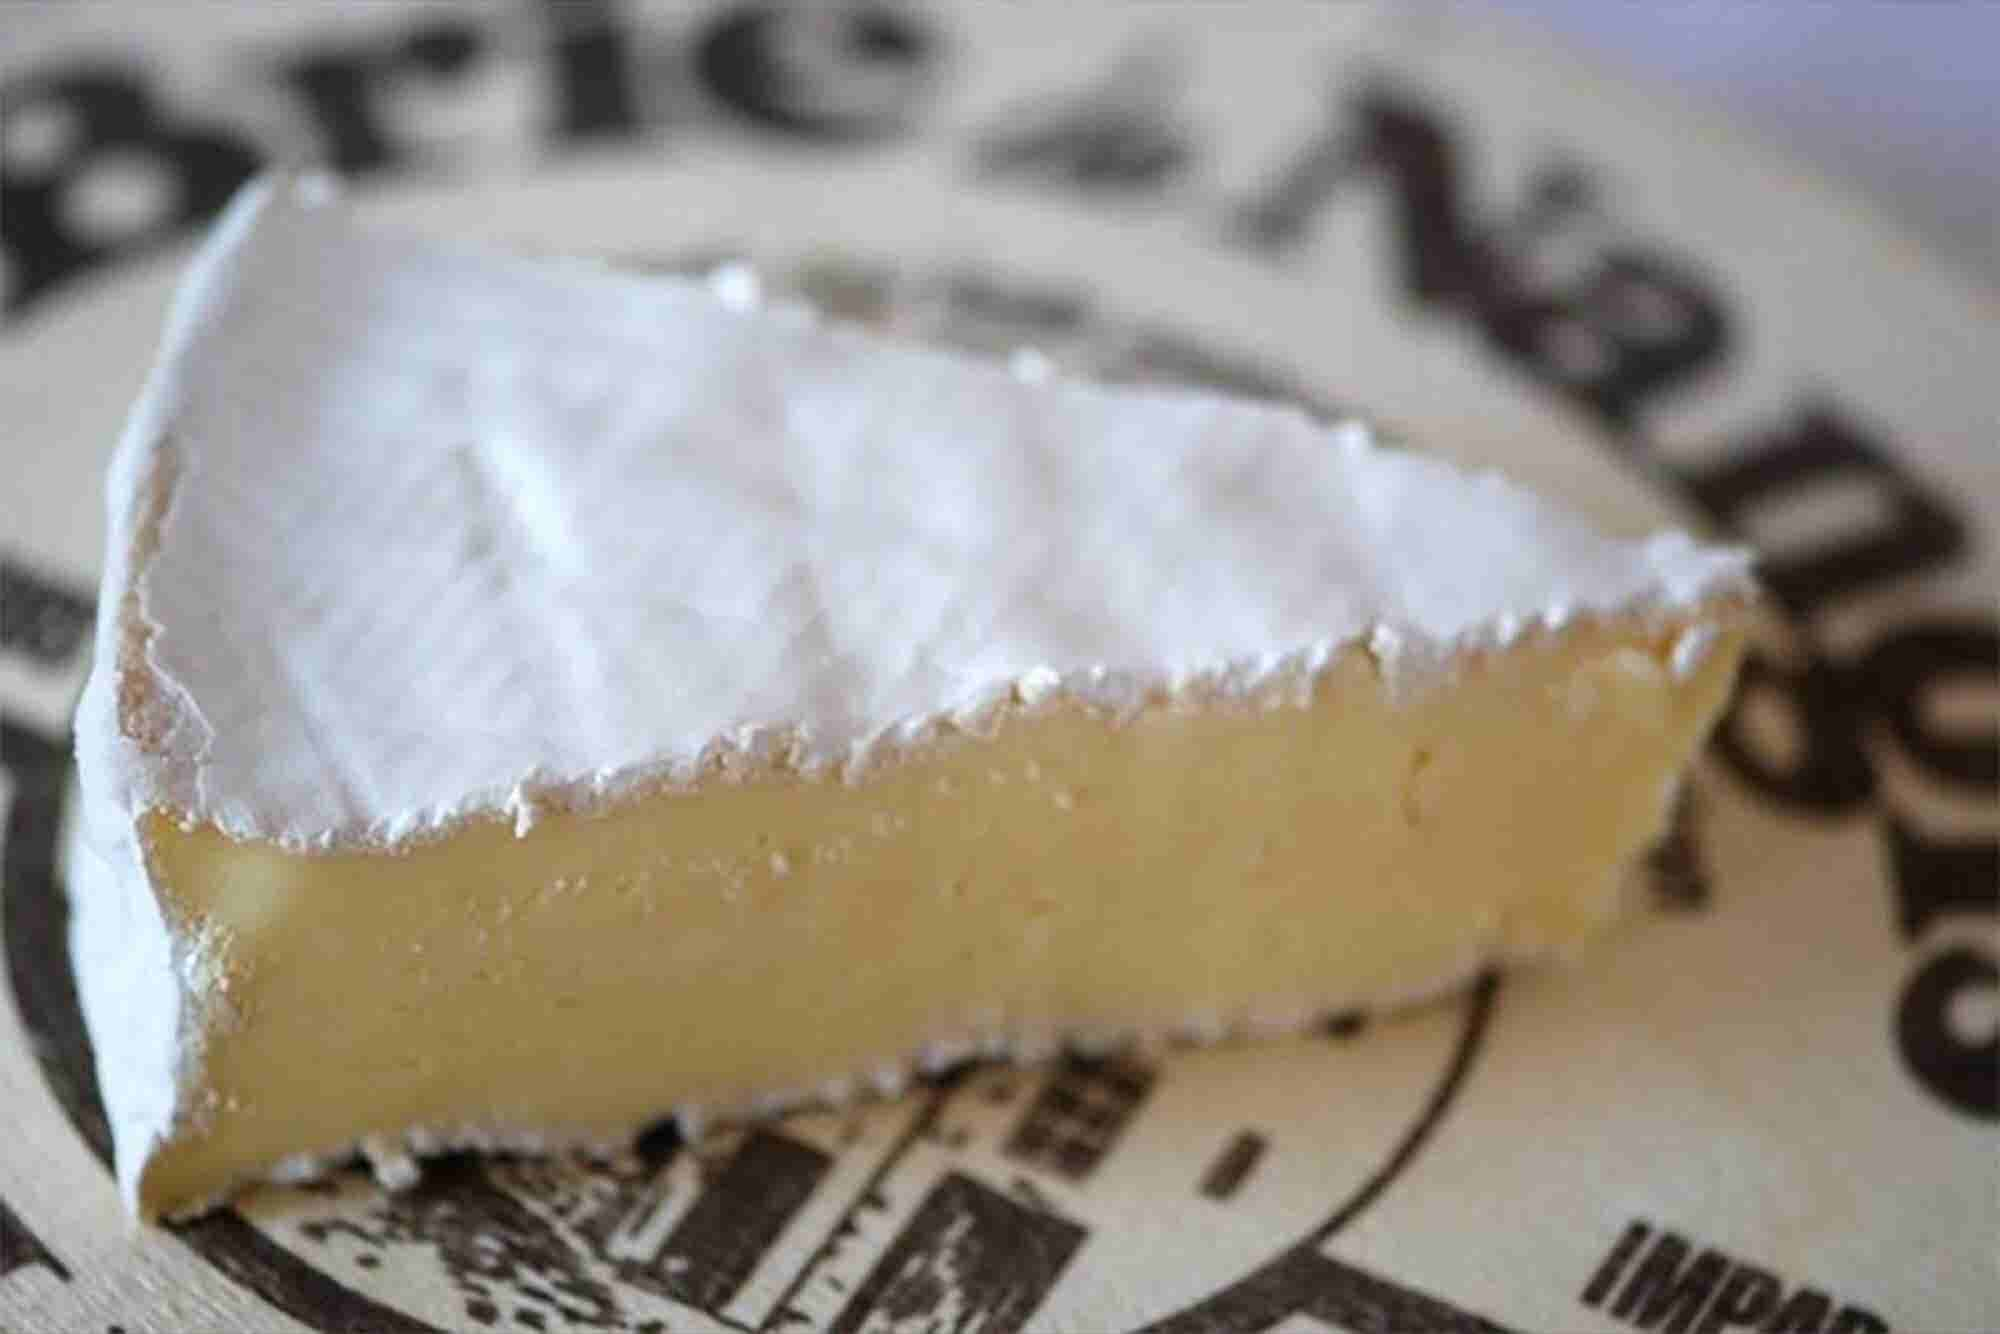 Artisanal Craftspeople Are Making Healthy Cheeses With Compelling Histories